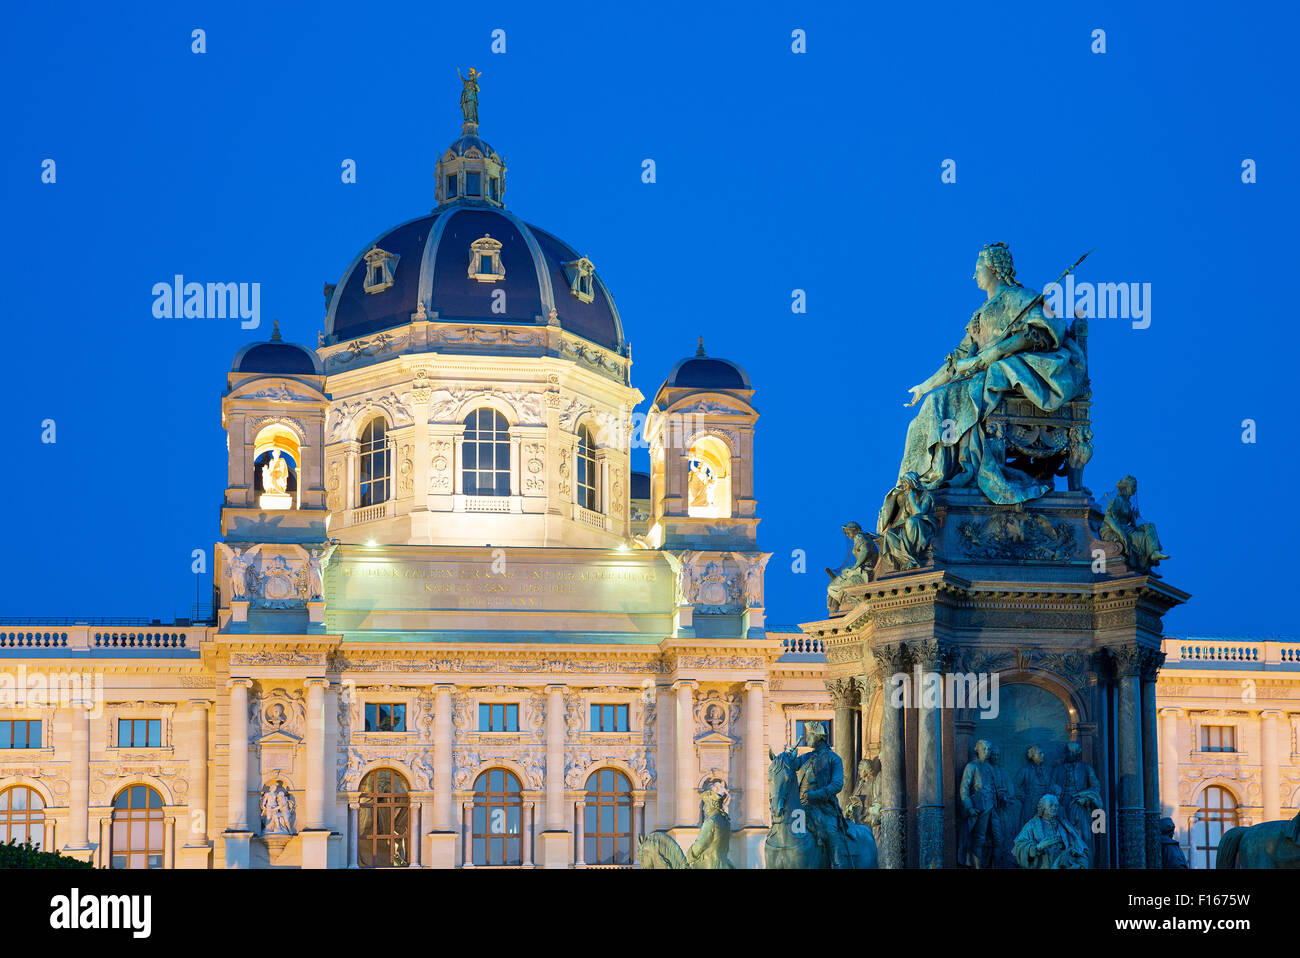 Austria, Vienna, view of Natural History Museum, Maria Theresa monument and Garden - Stock Image